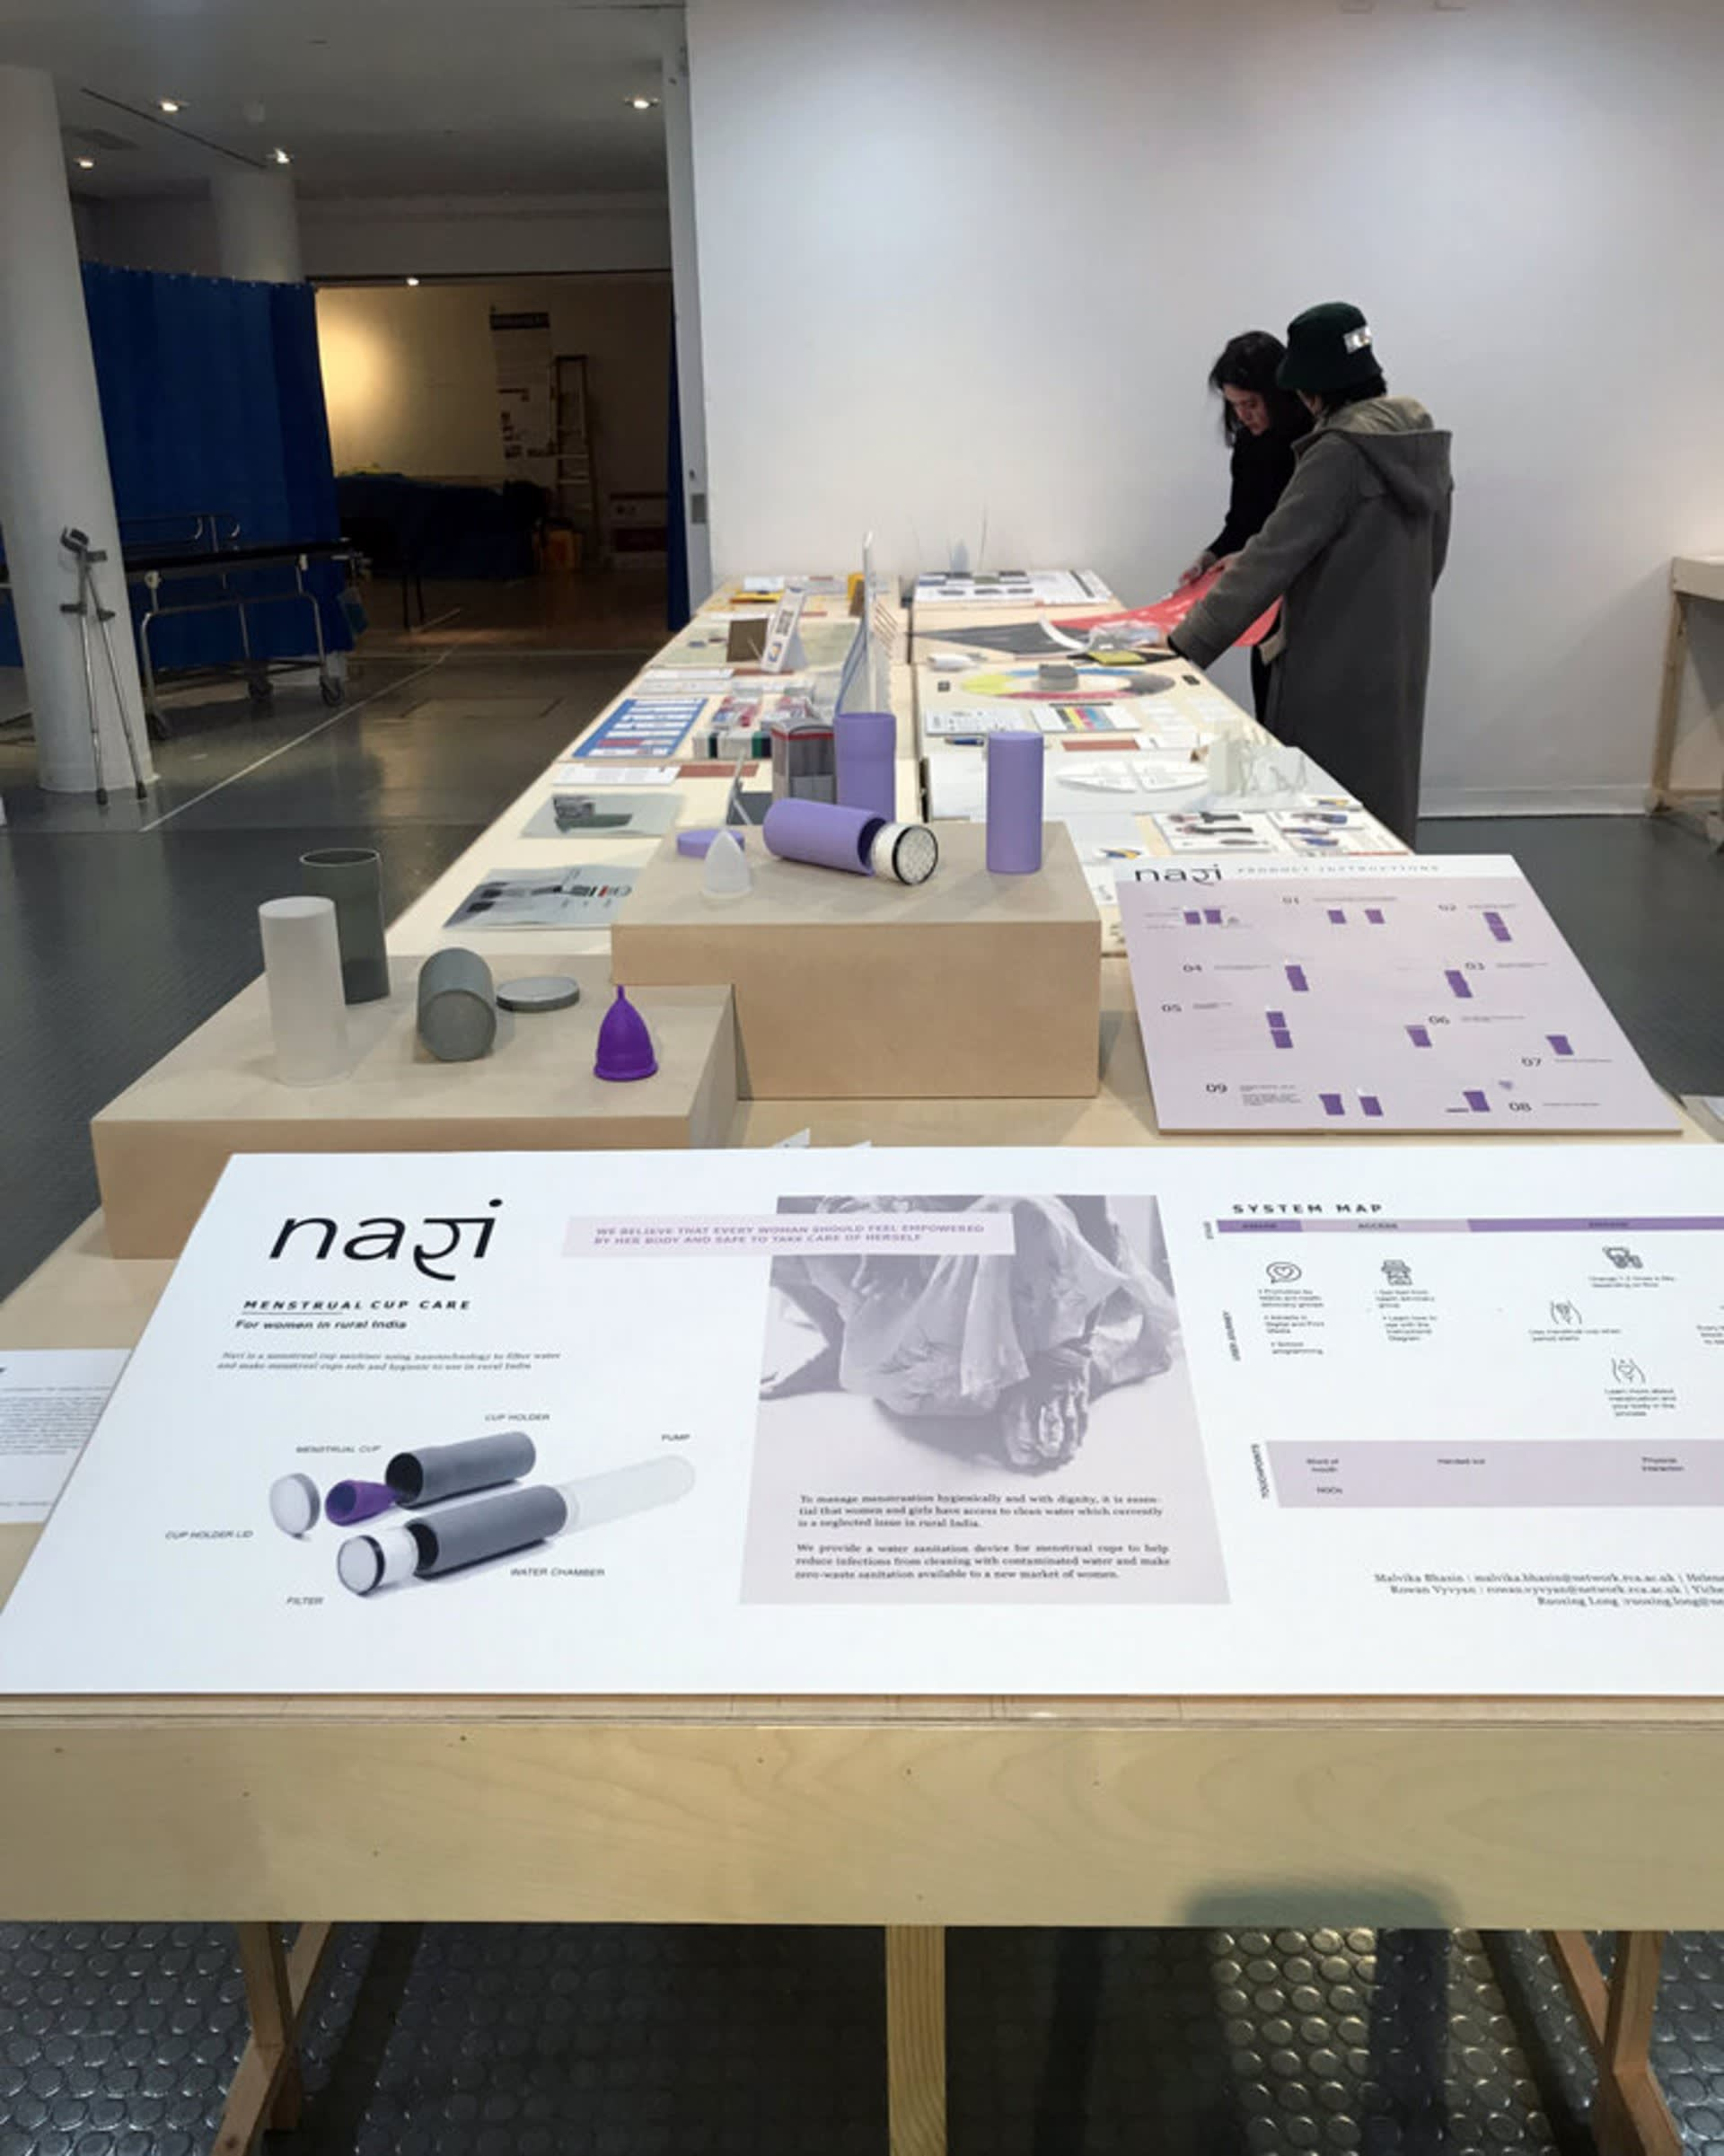 The Grand Challenge Exhibit at the Royal College of Art